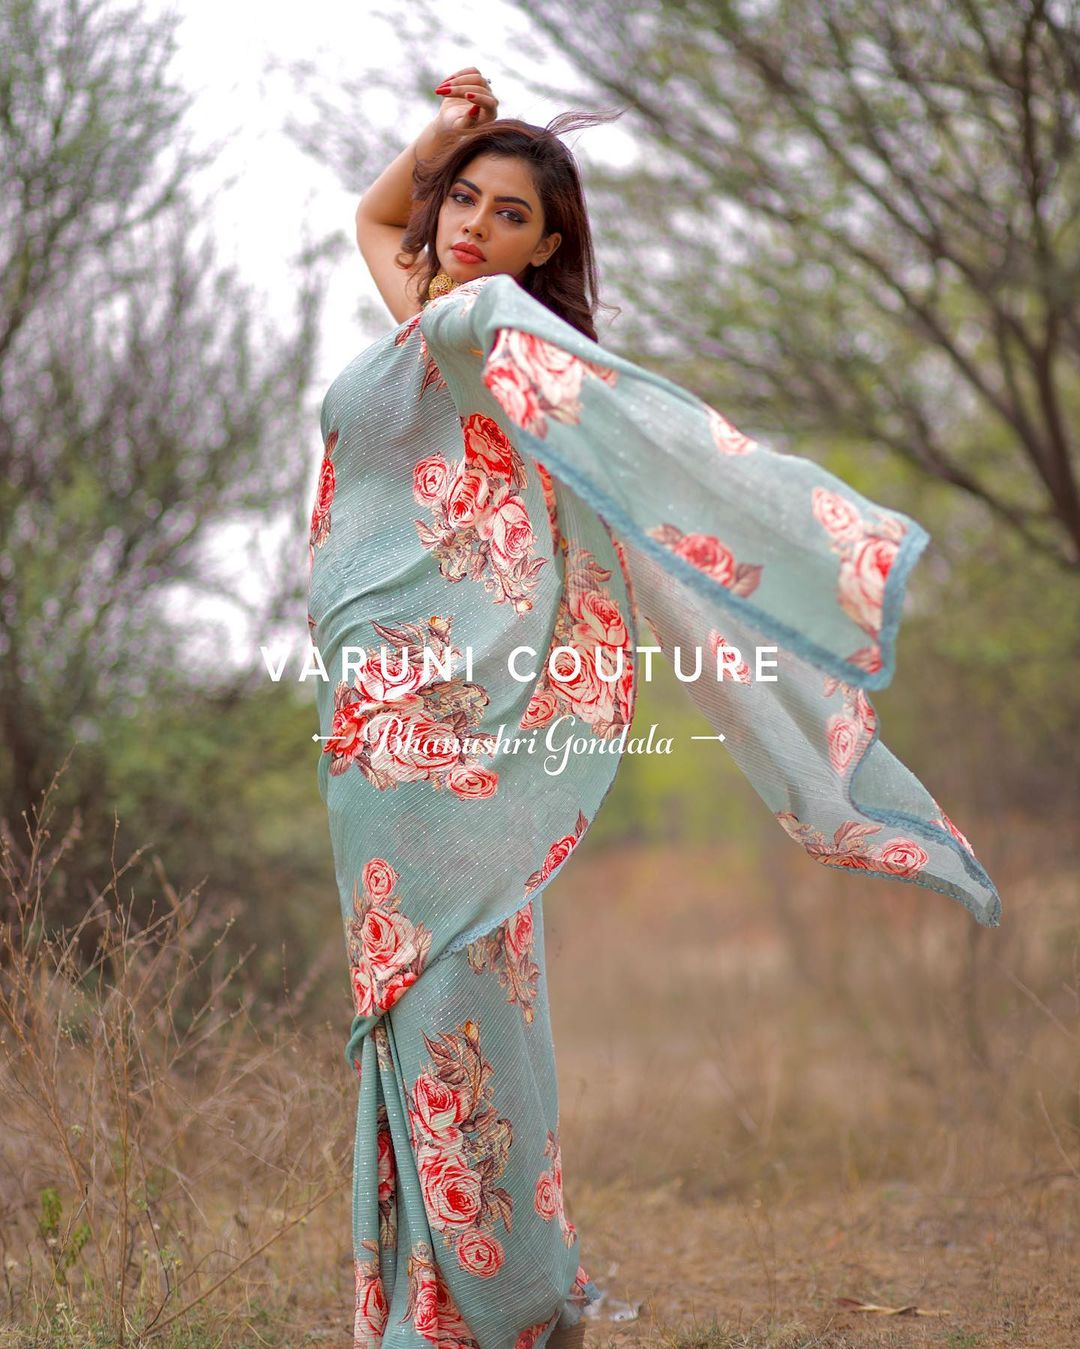 Stunning ice blue color floral saree and red color sleeveless blouse. Price 6999 INR  For sales / orders WhatsApp 9121017226 Email varunicouturehyd@gmail.com 2021-05-09